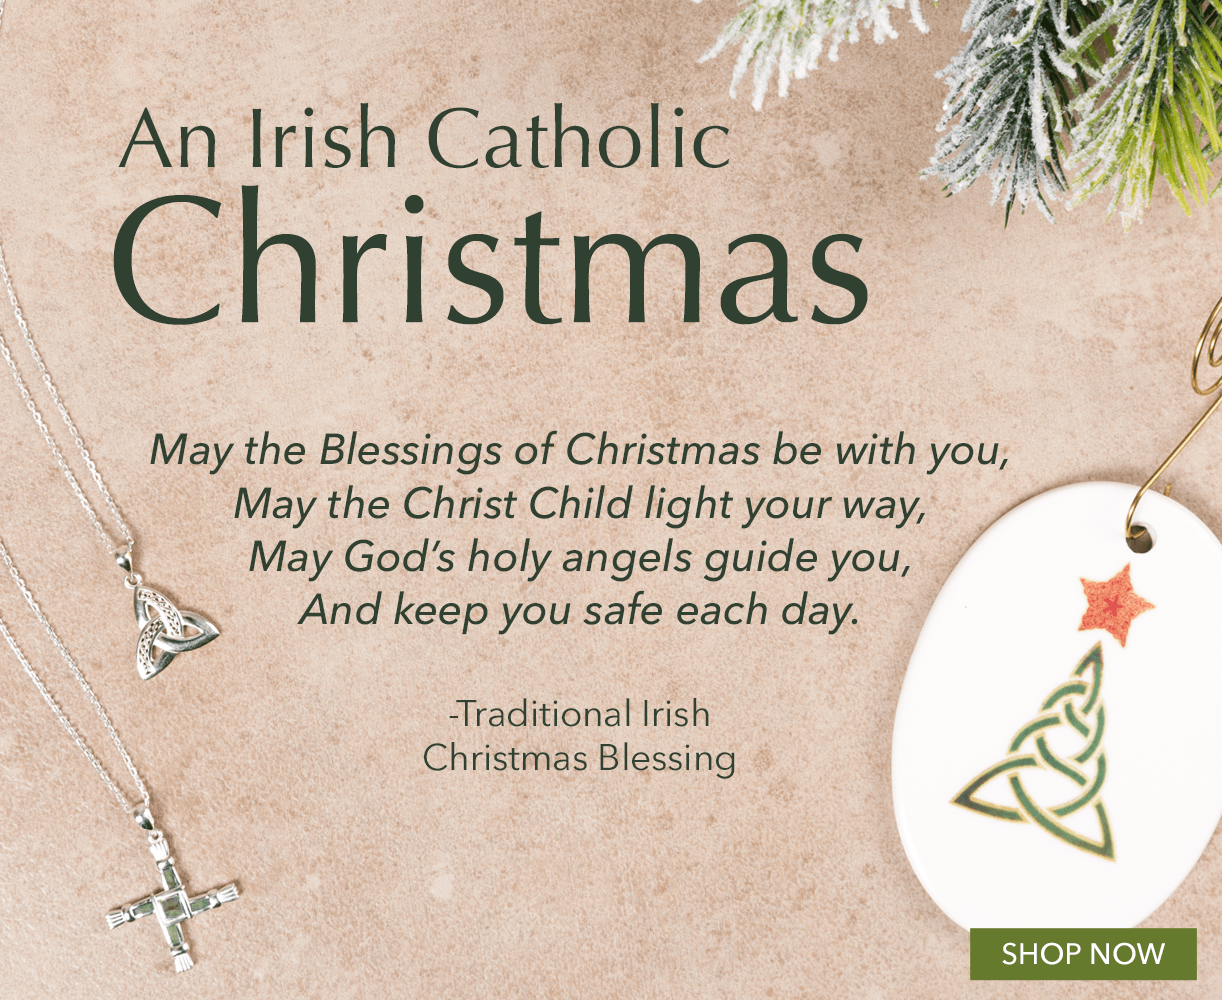 Trinity Road Websites: Have A Merry Irish Catholic Christmas | Milled